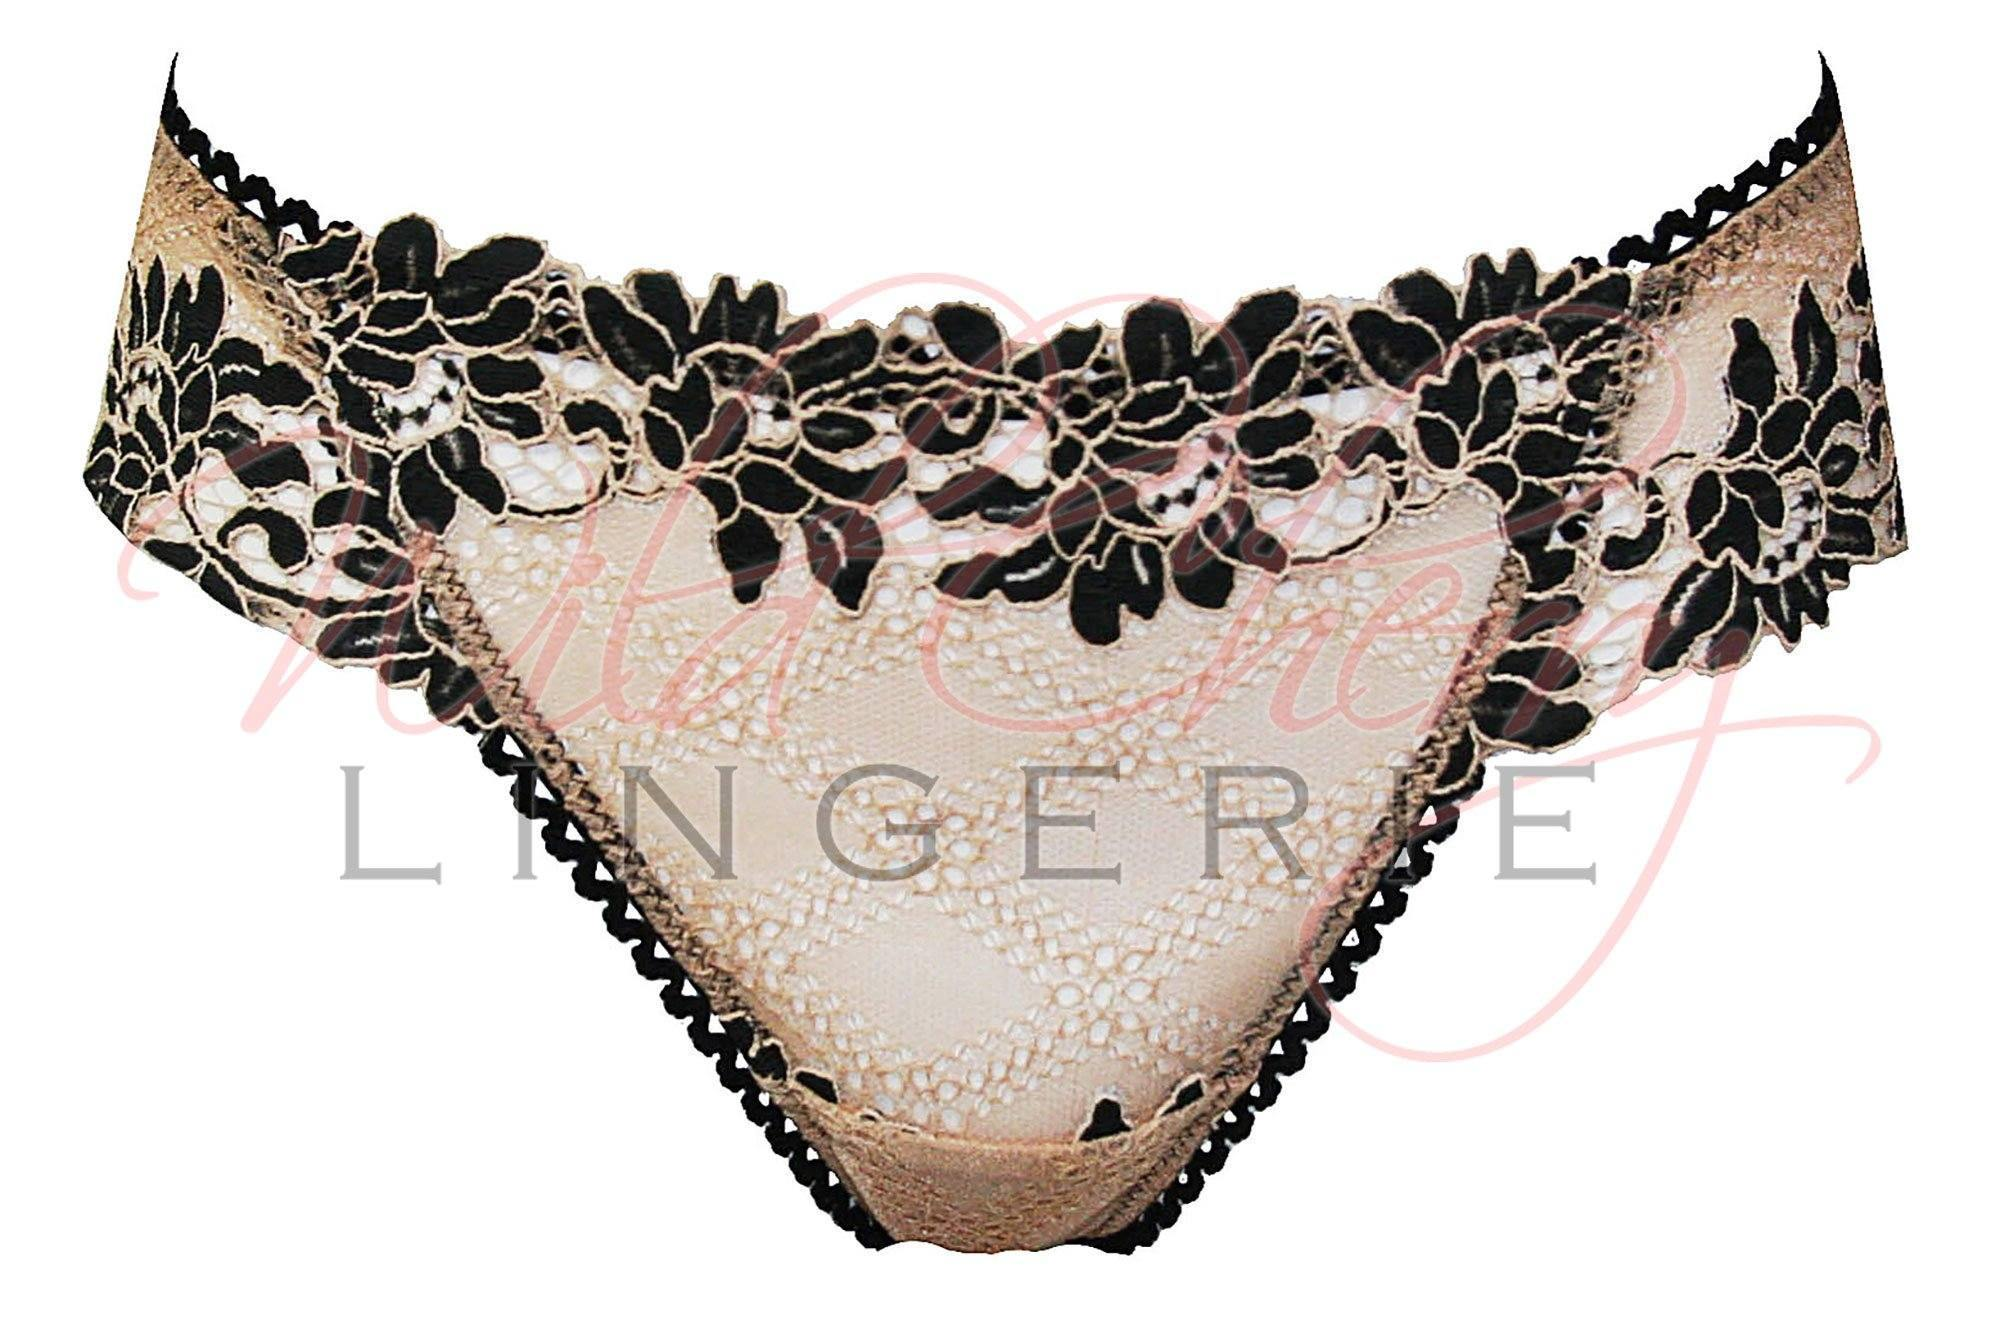 Daniella Beige Collection Thong Panty VIPA Lingerie, Panties, VIPA Lingerie - Wild Cherry Lingerie